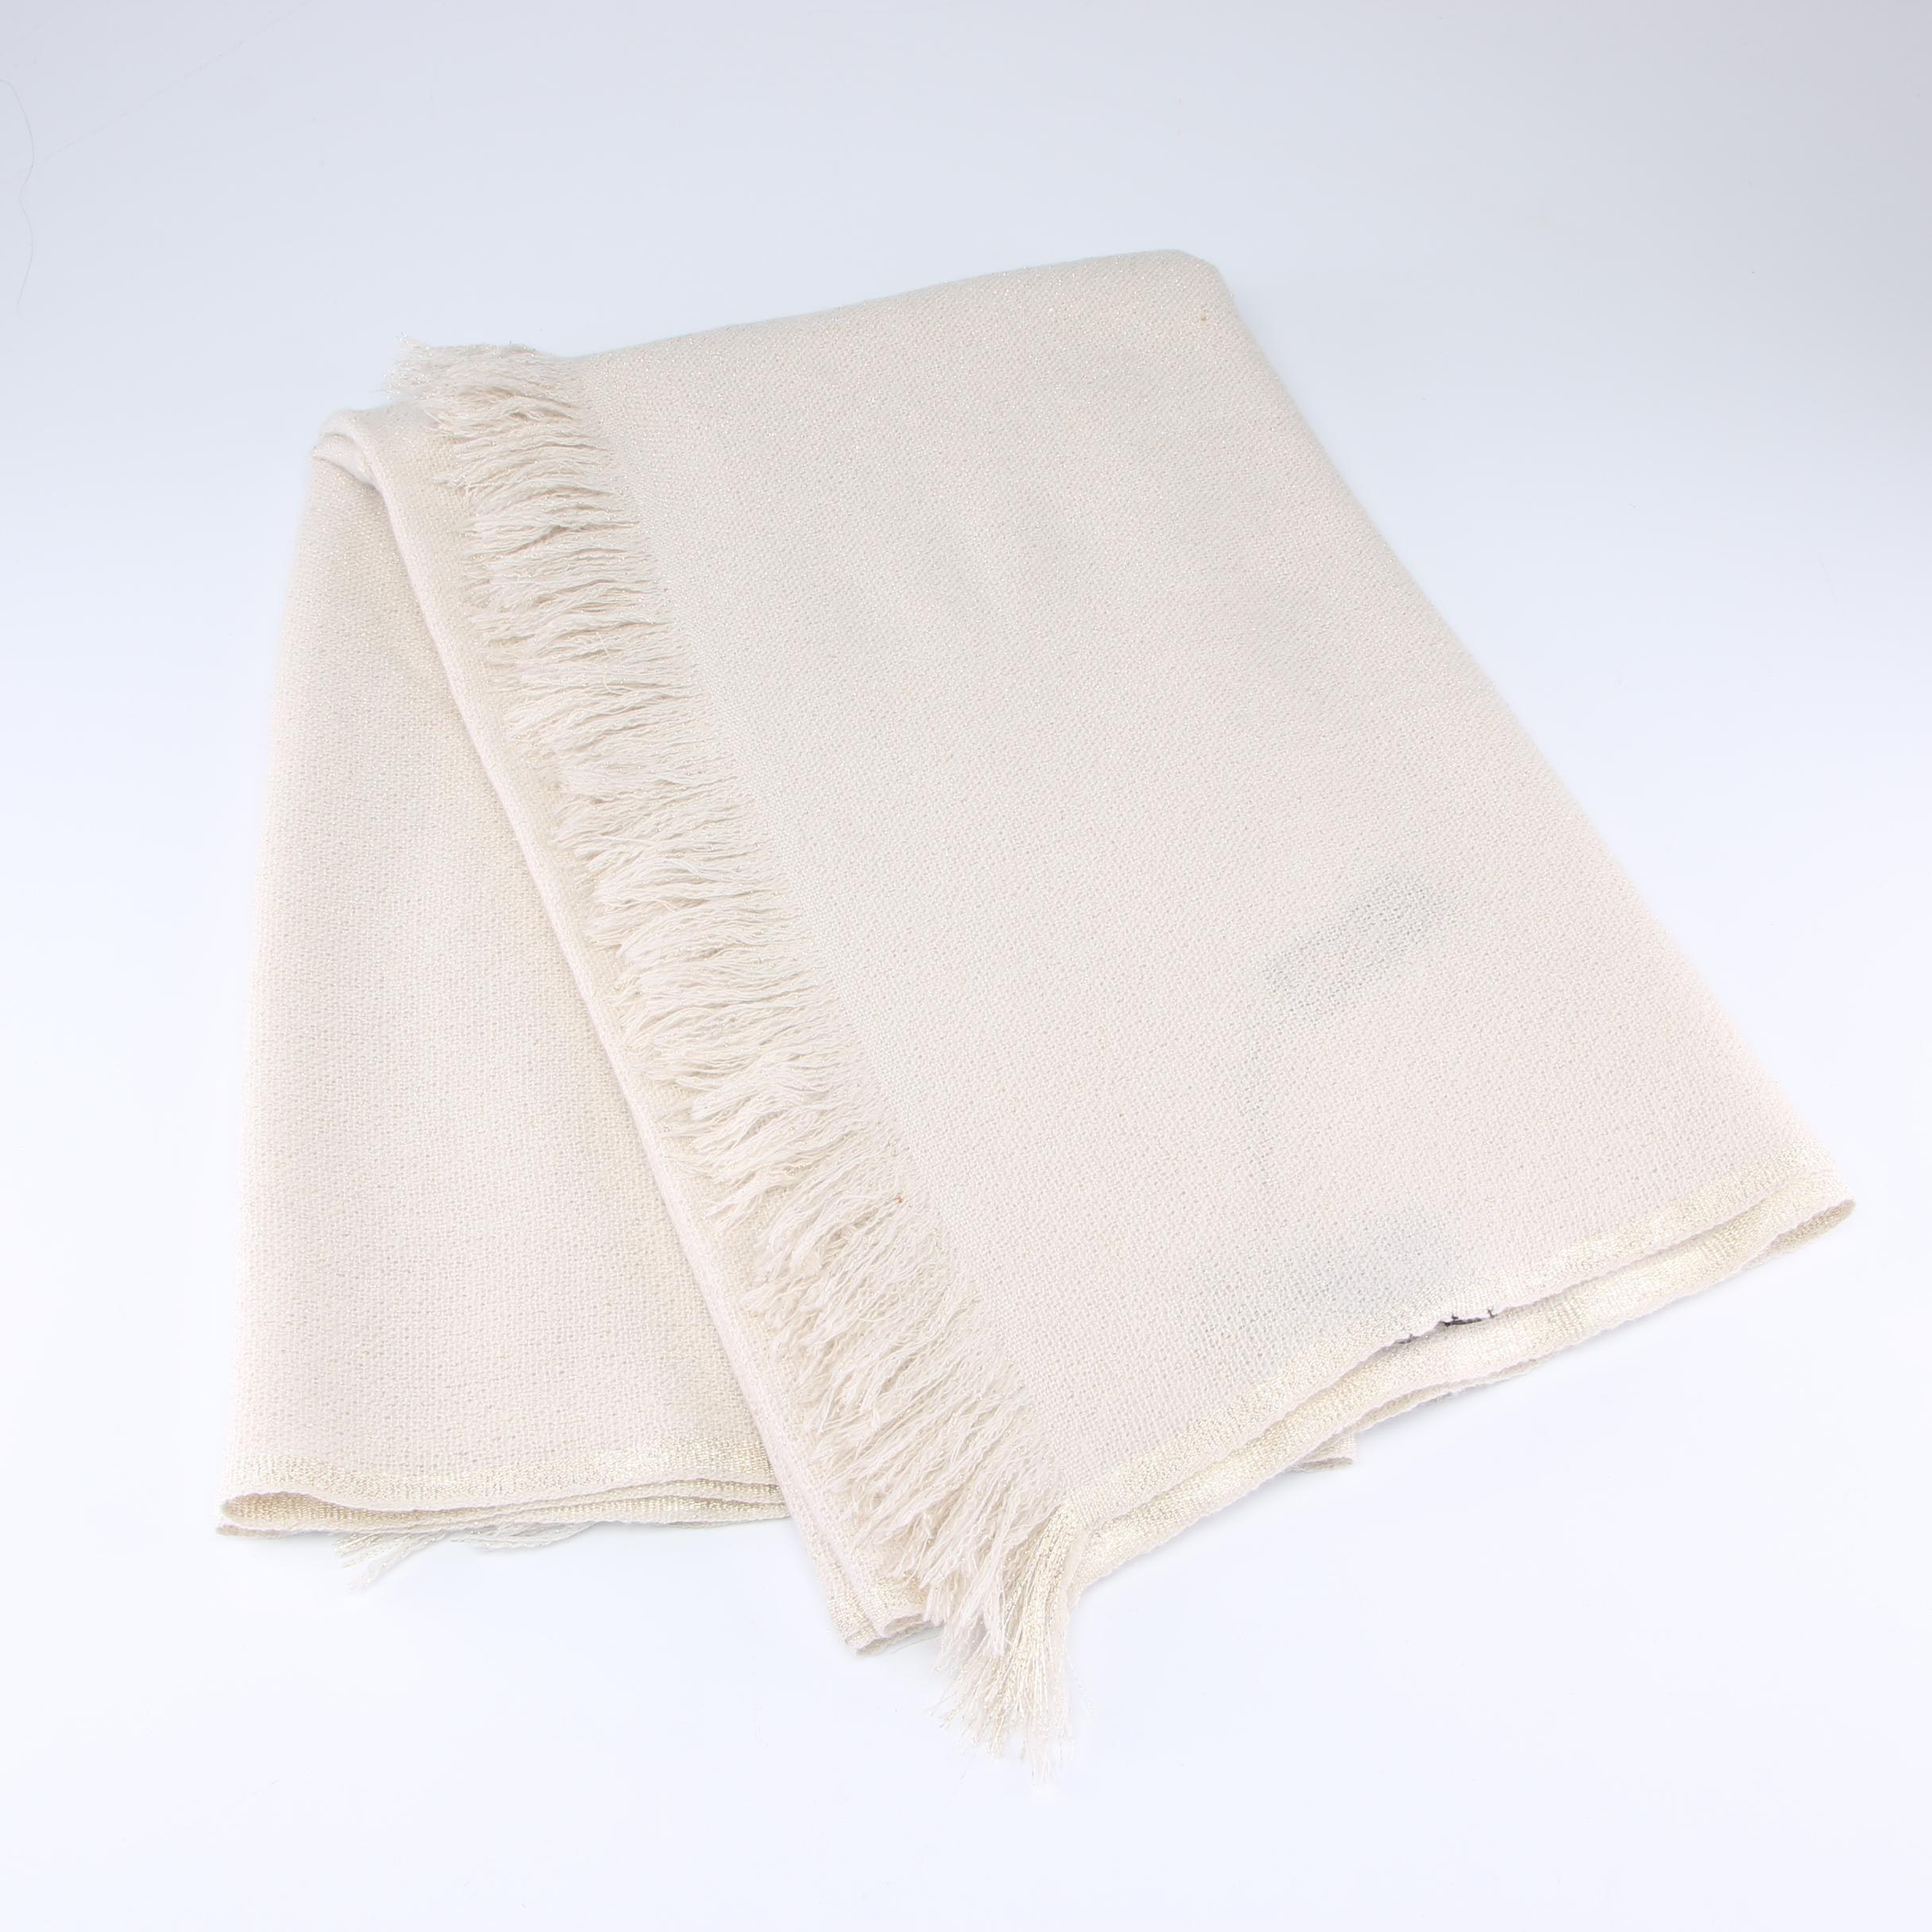 Loro Piana Baby Cashmere Blend Scarf, Made in Italy